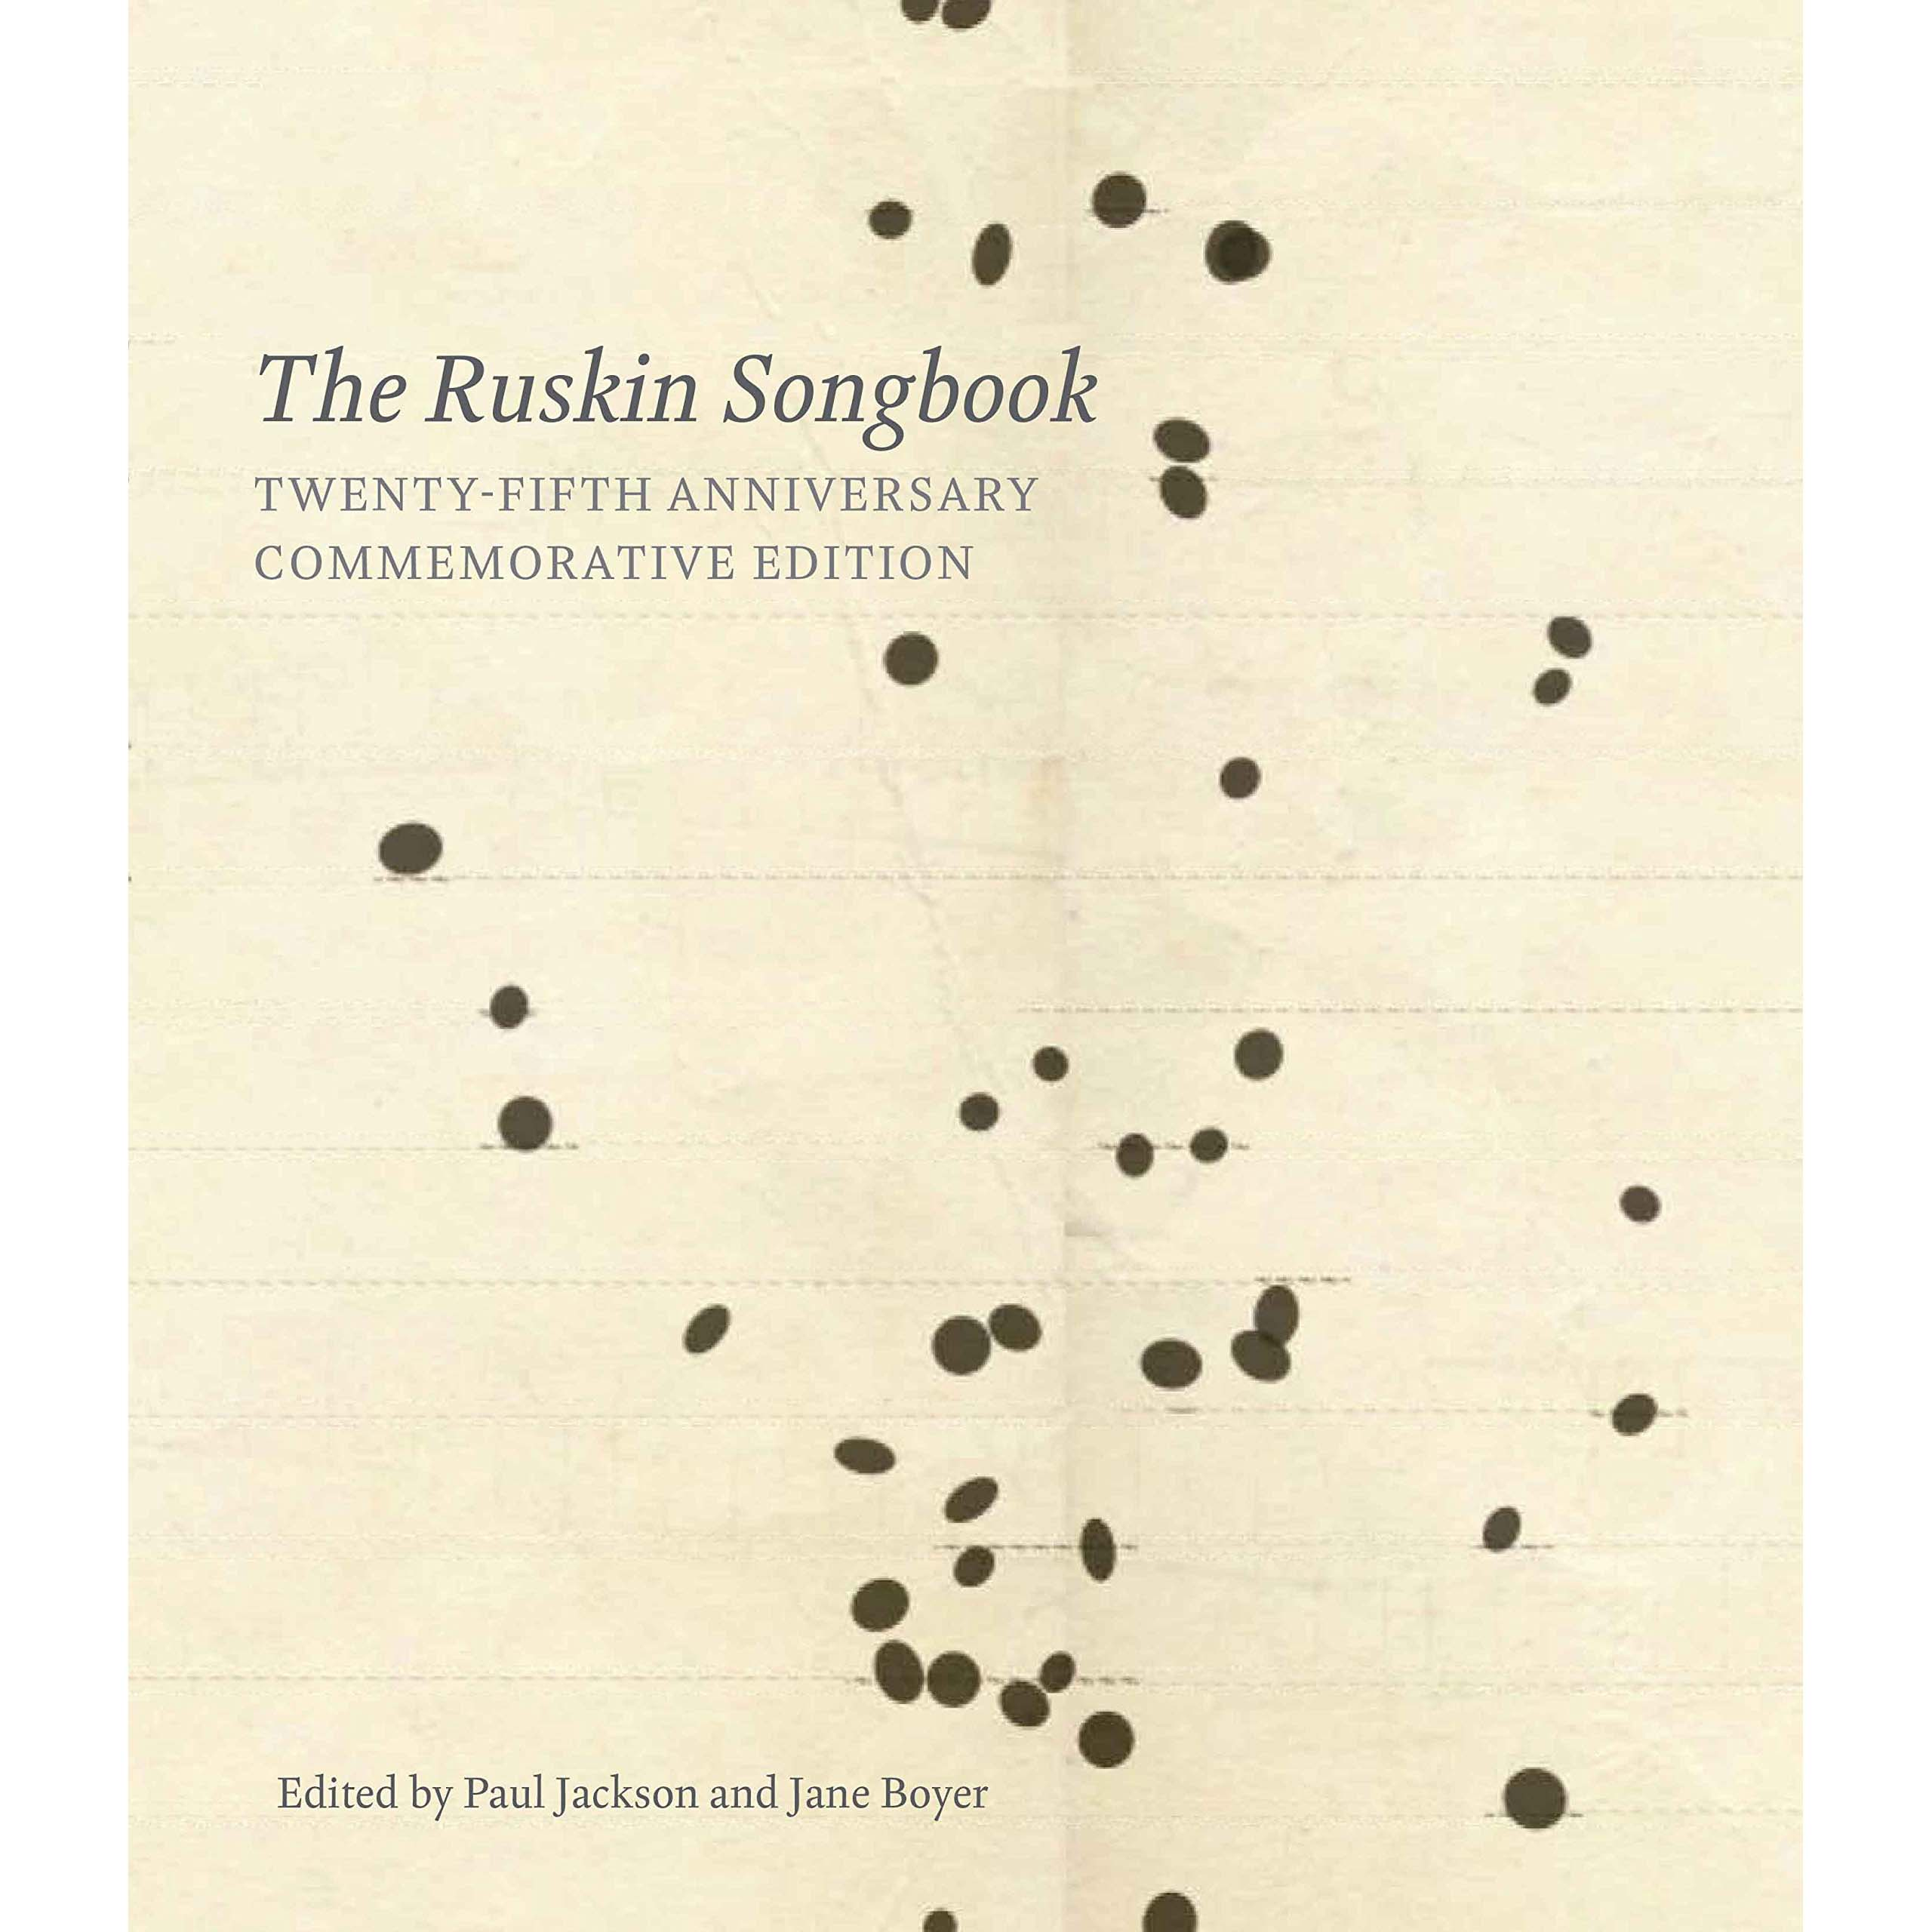 ruskin_songbook_cover_image_from_unthinking_things